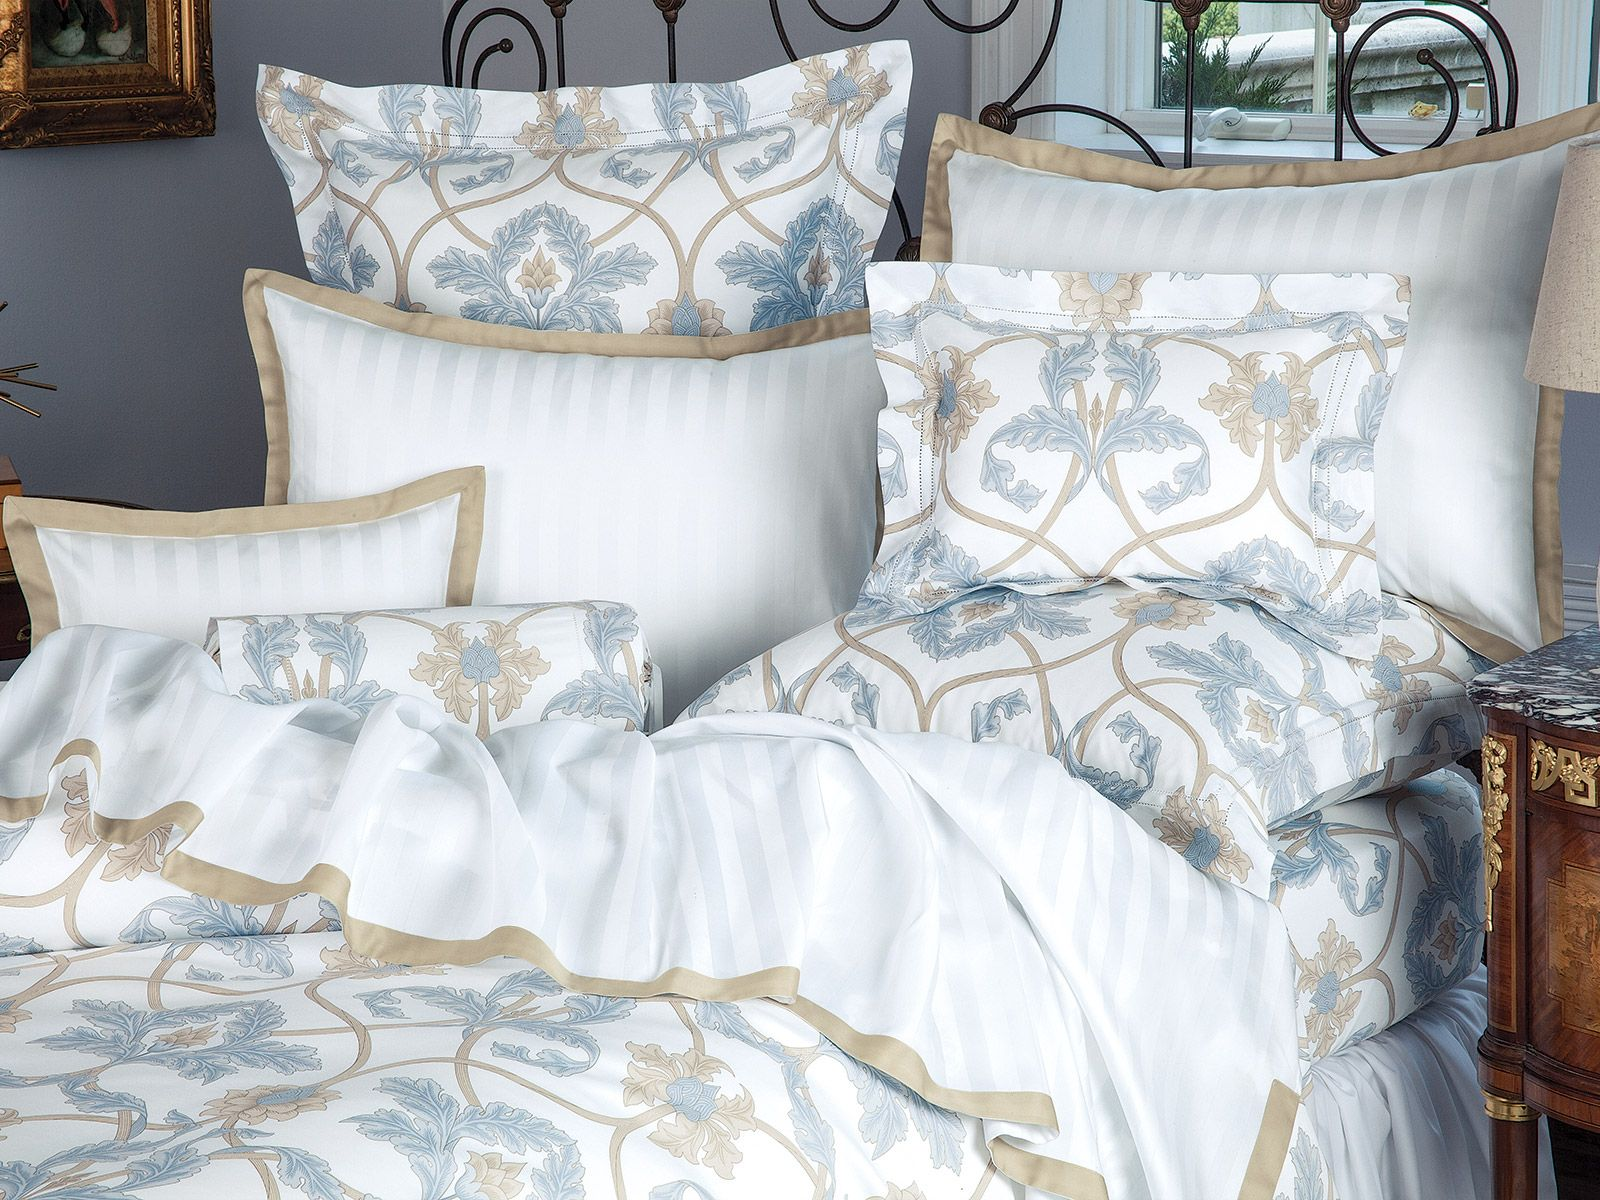 Lazio Luxury Bedding Italian Bed Linens Schweitzer